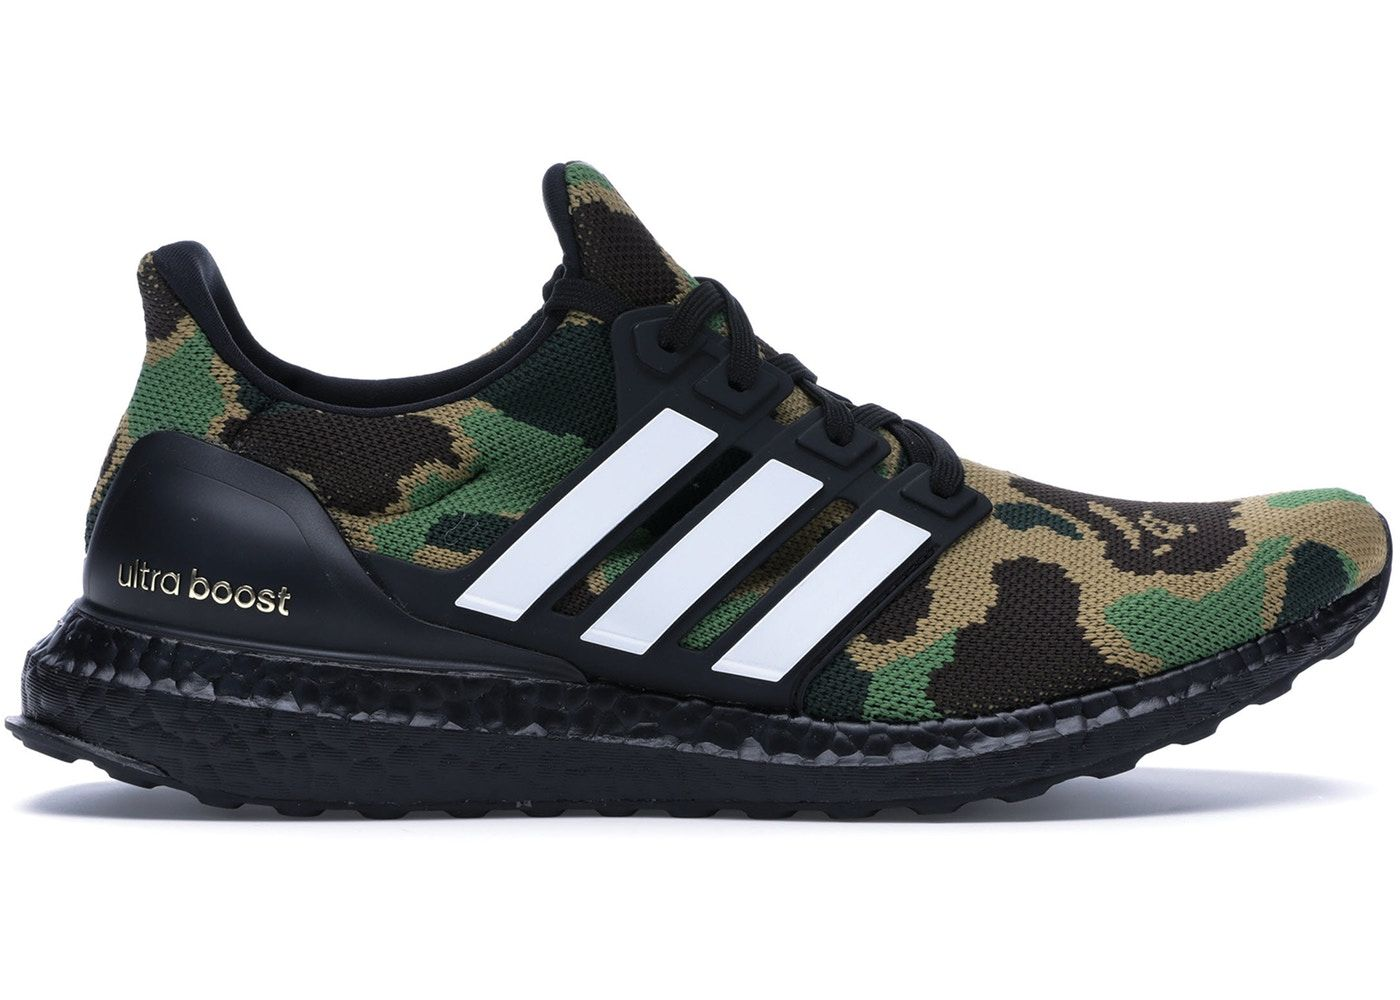 cheap for discount 7c0ae 4a931 adidas Ultra Boost 4.0 Bape Camo in 2019 | Sneakers | Adidas ...